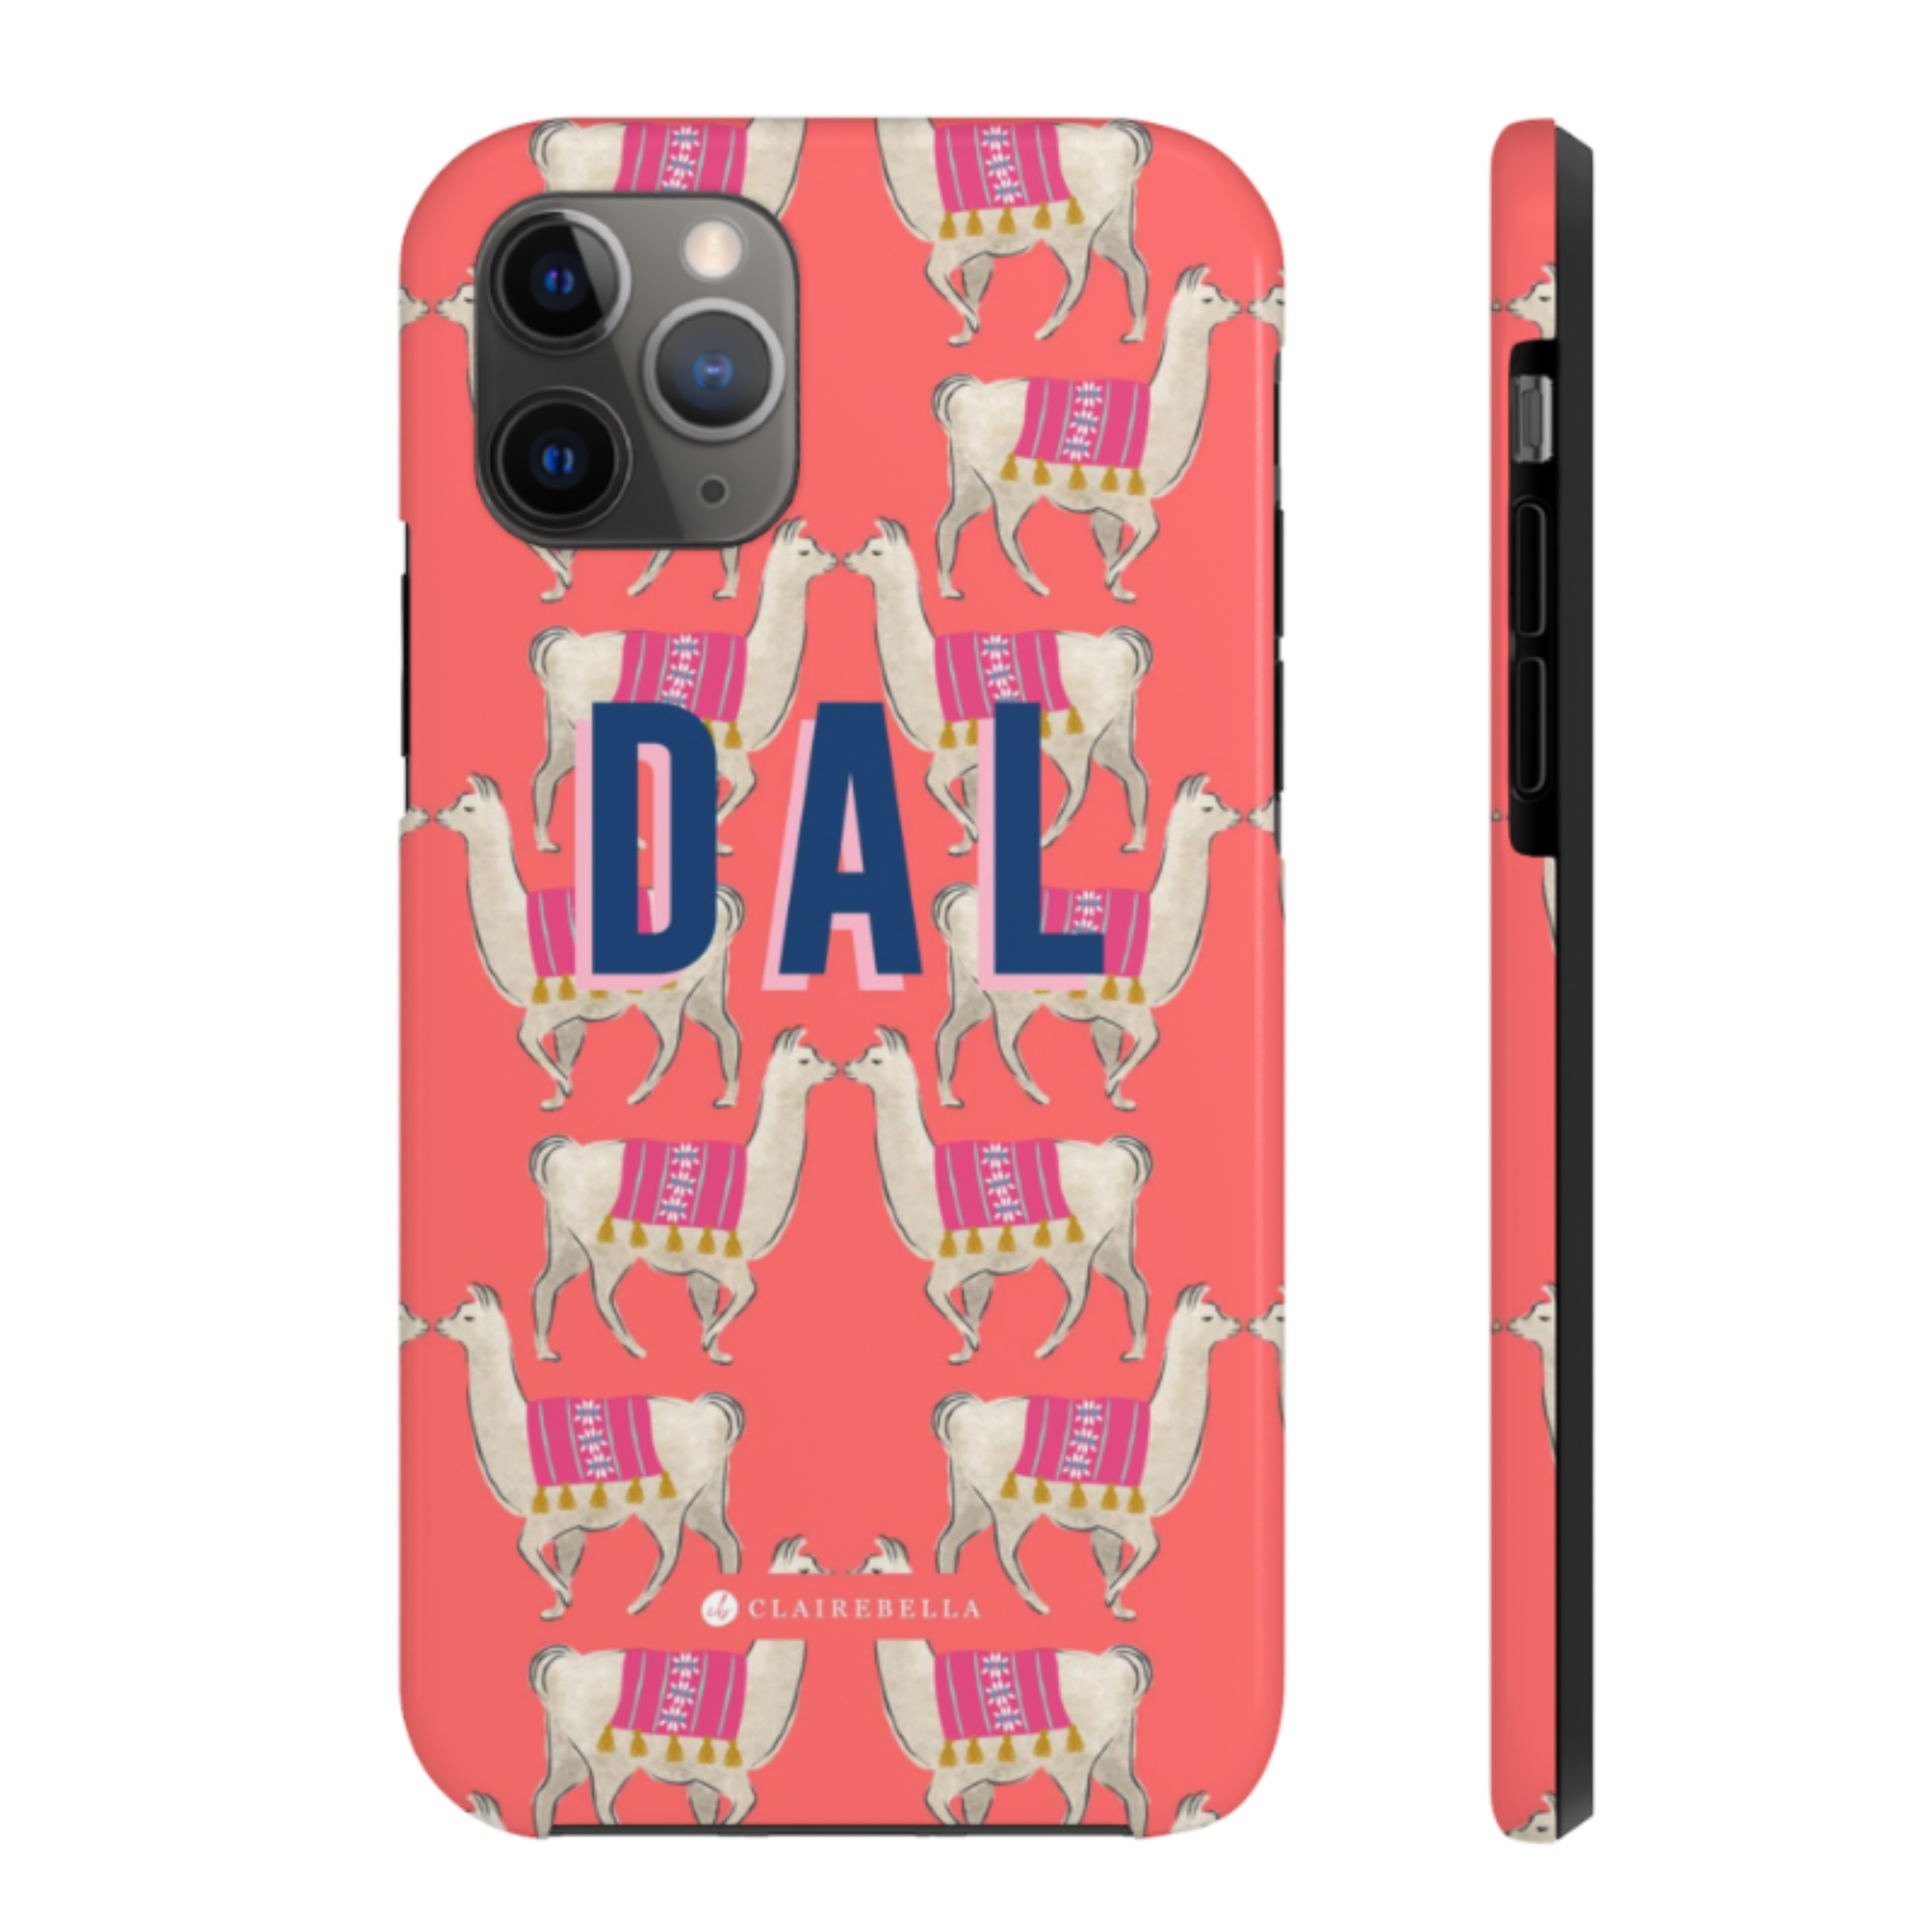 Llama iPhone Case (More sizes & colors available)